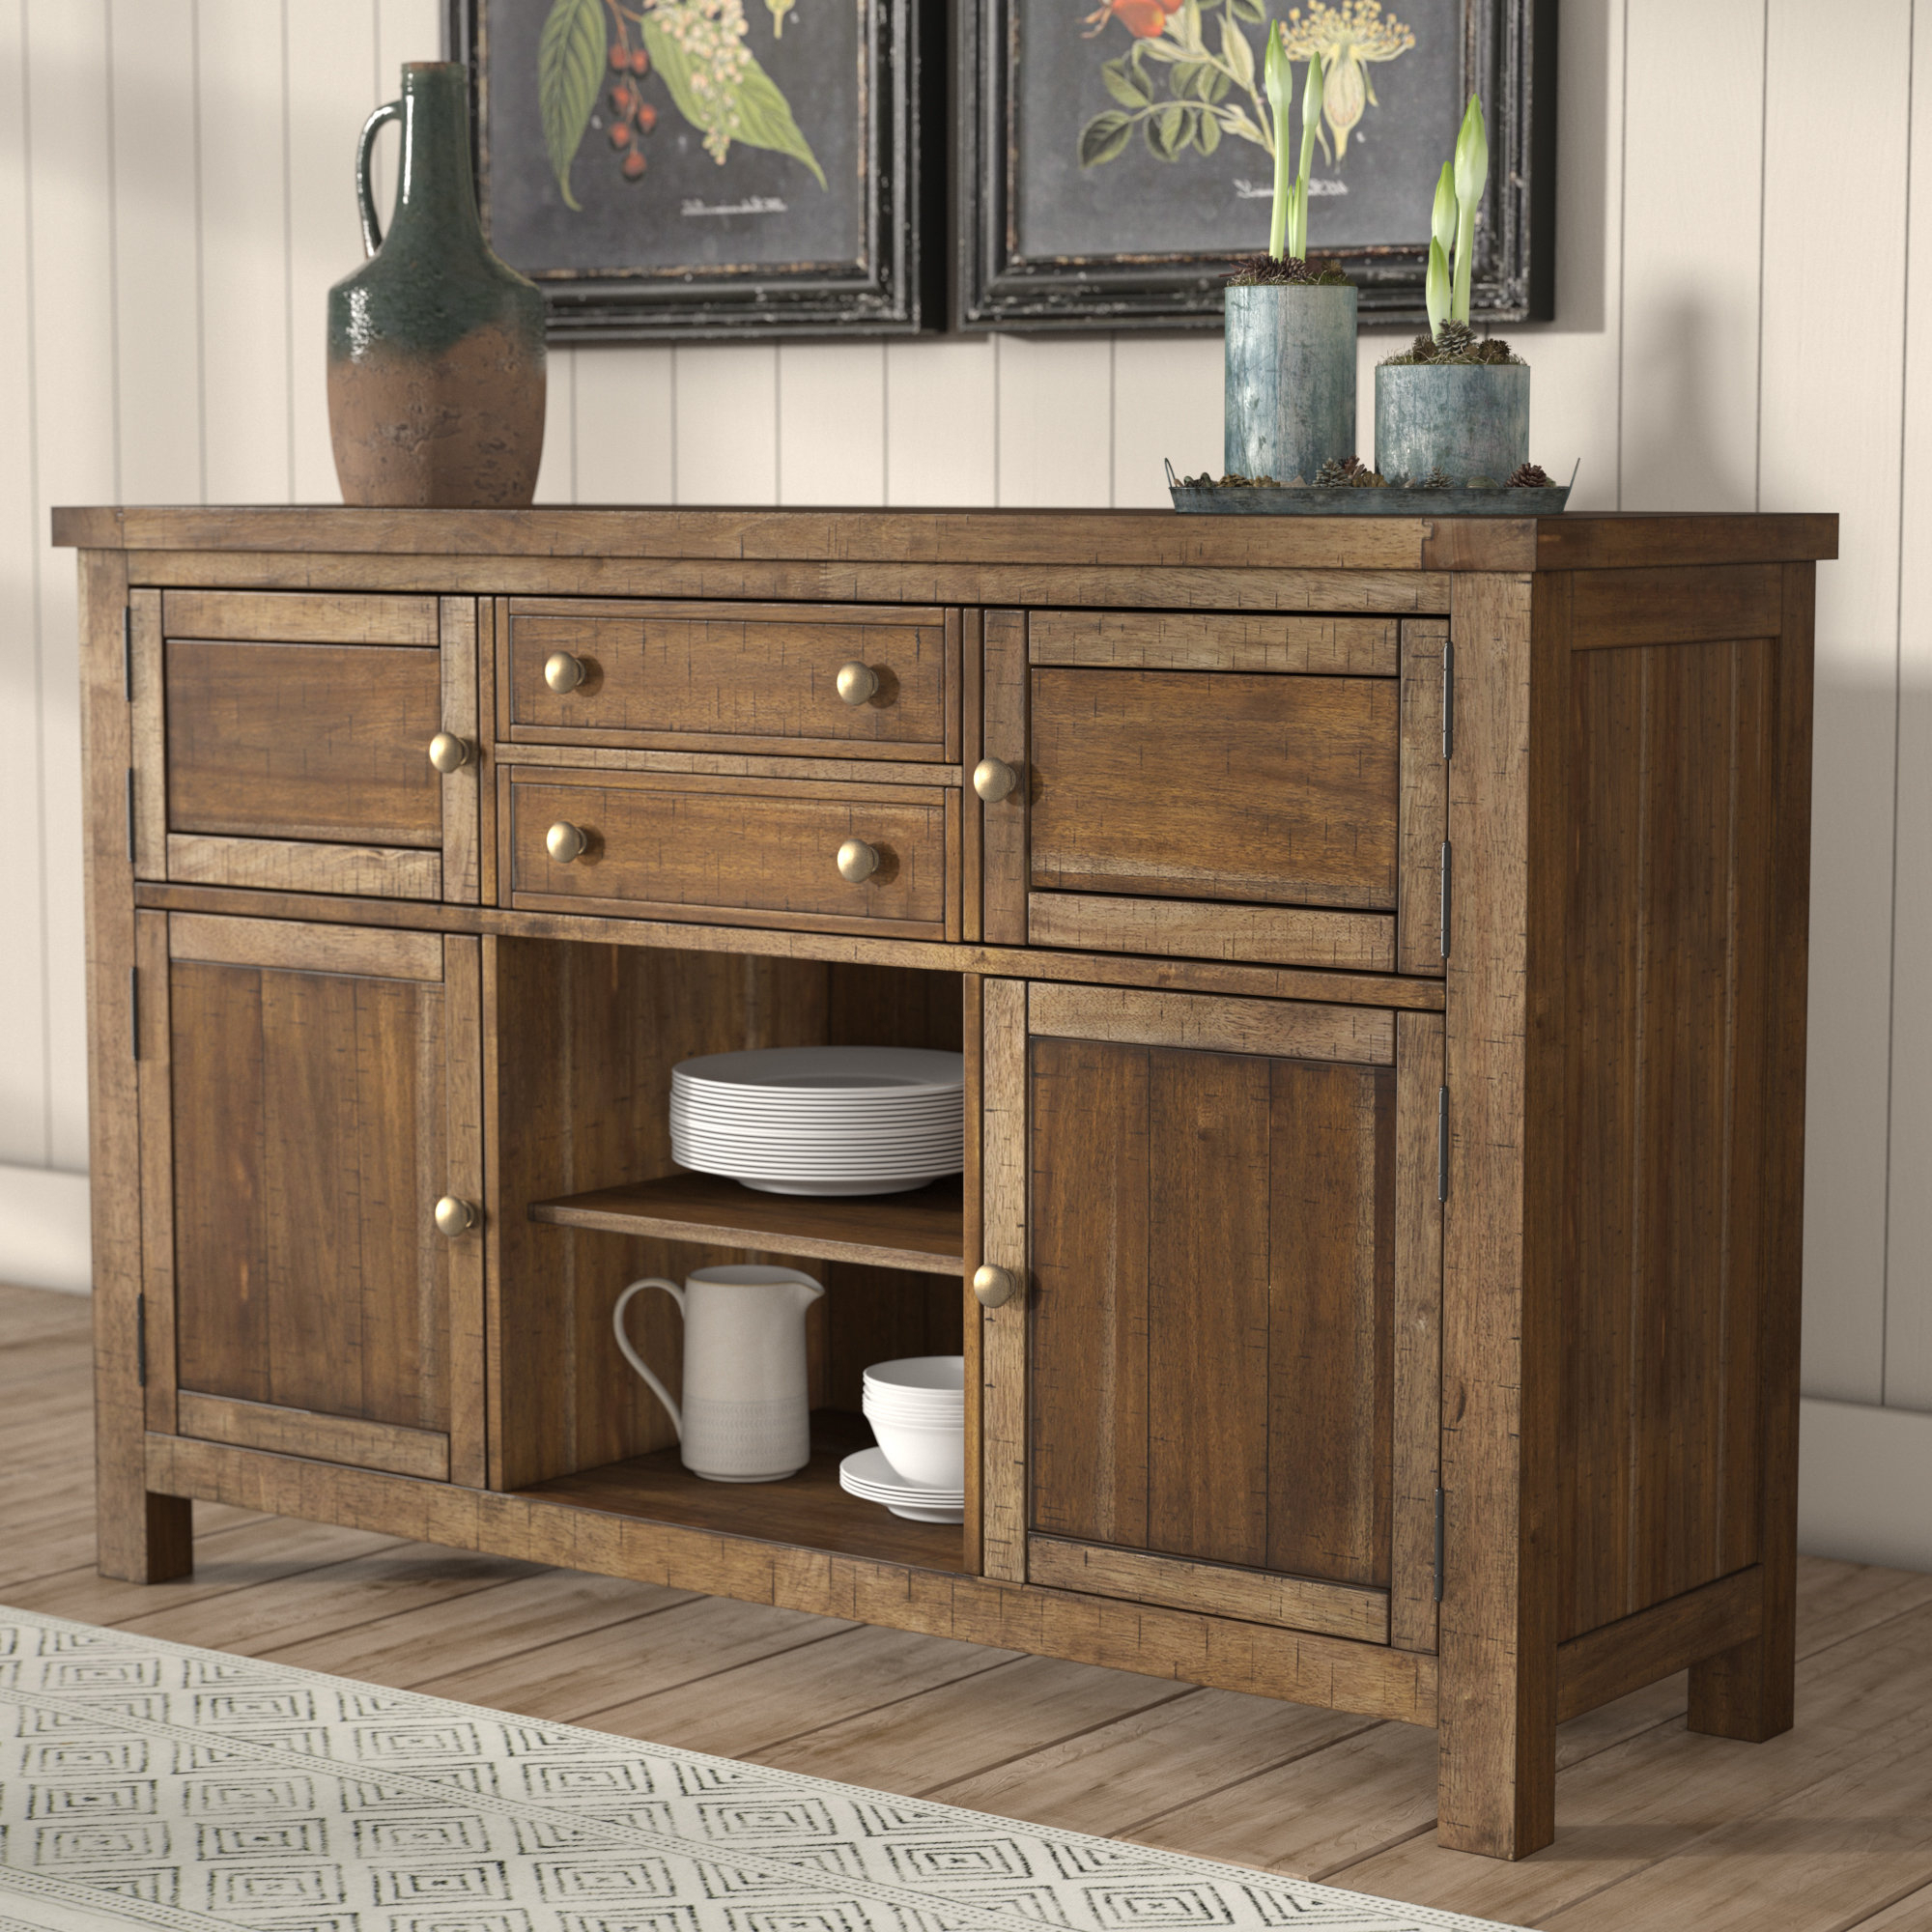 Widely Used Laurel Foundry Modern Farmhouse Hillary Dining Room Buffet Pertaining To Nashoba Sideboards (Gallery 20 of 20)